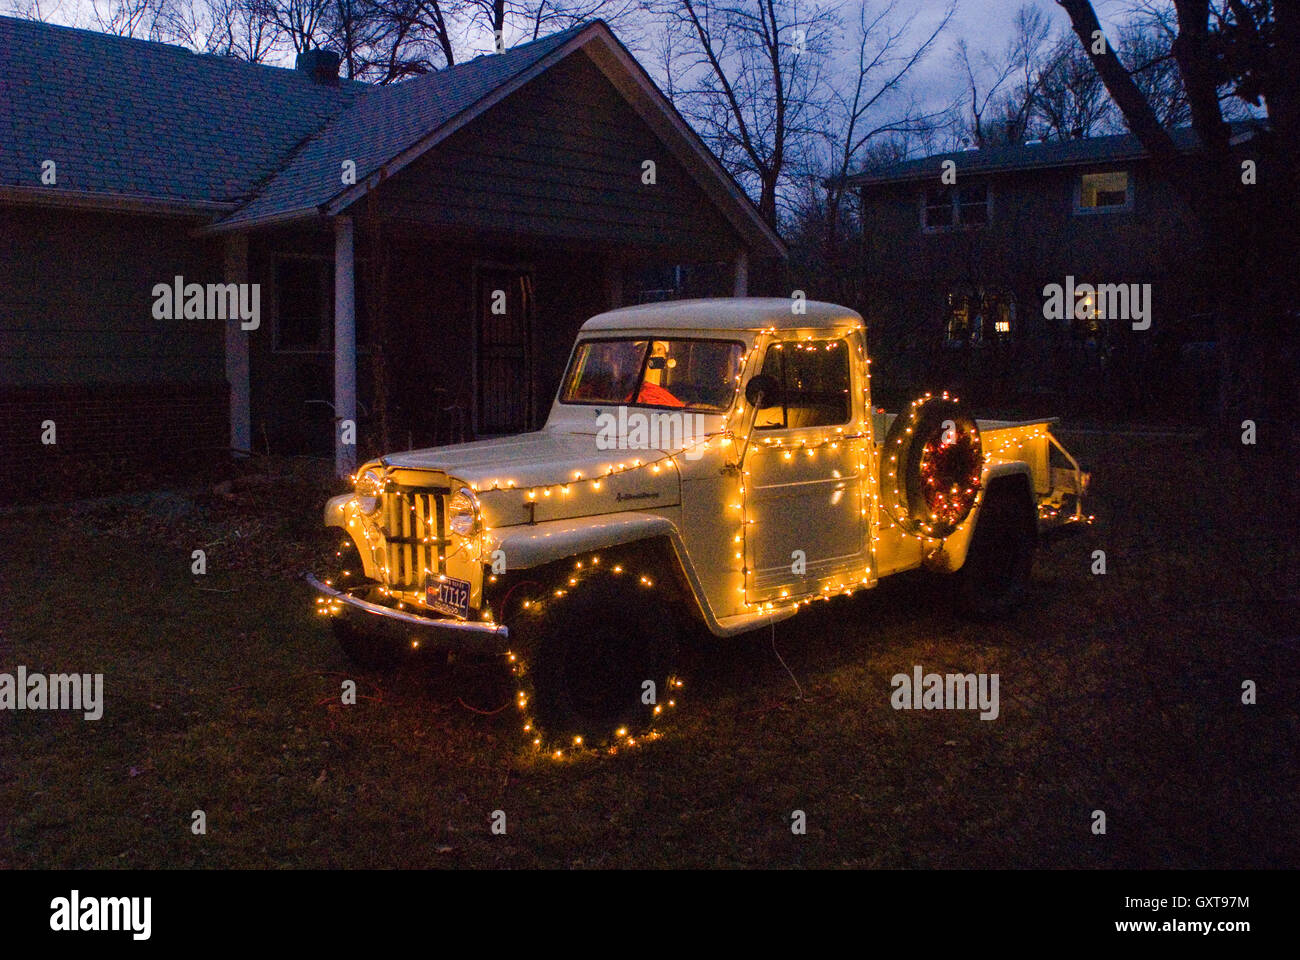 old jeep comanche pickup truck decorated for the holidays stock image - Jeep Christmas Decorations